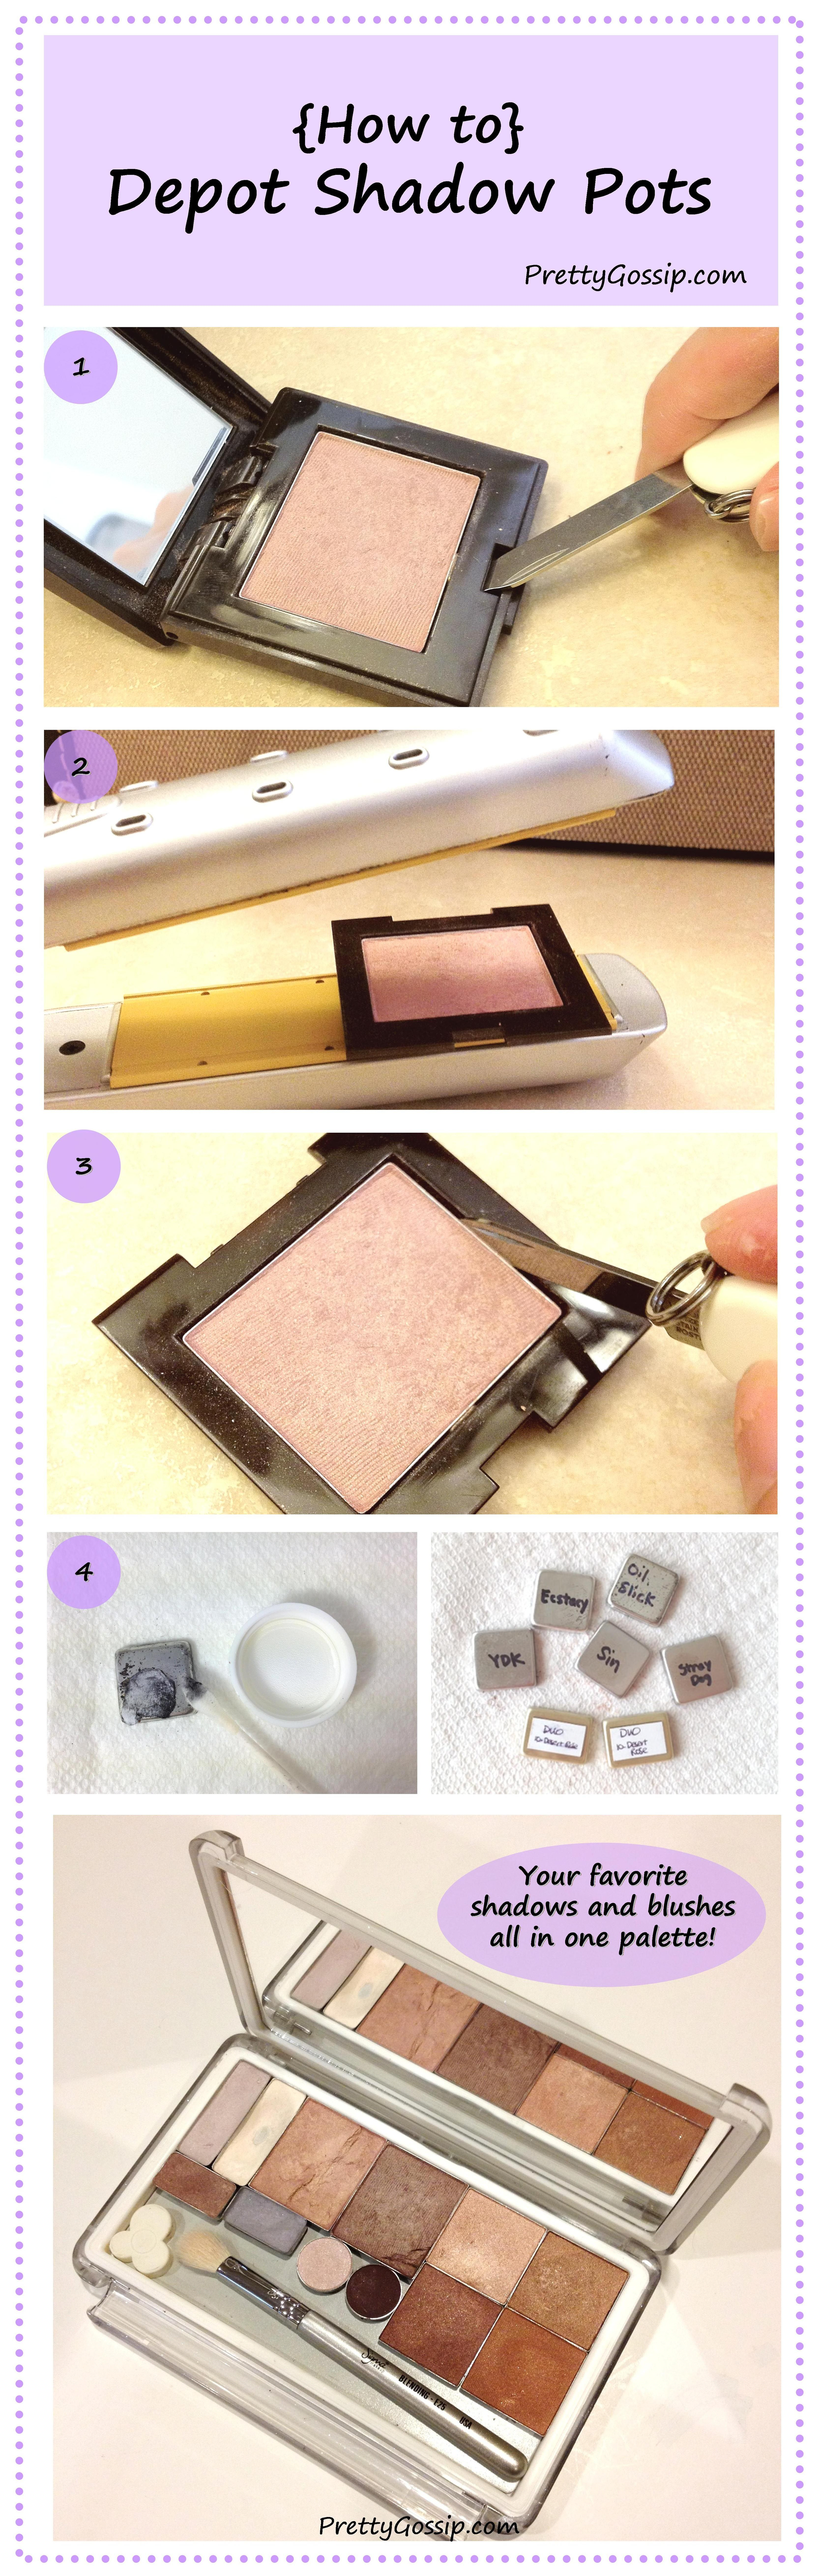 Make your own personalized makeup palette in 4 easy steps